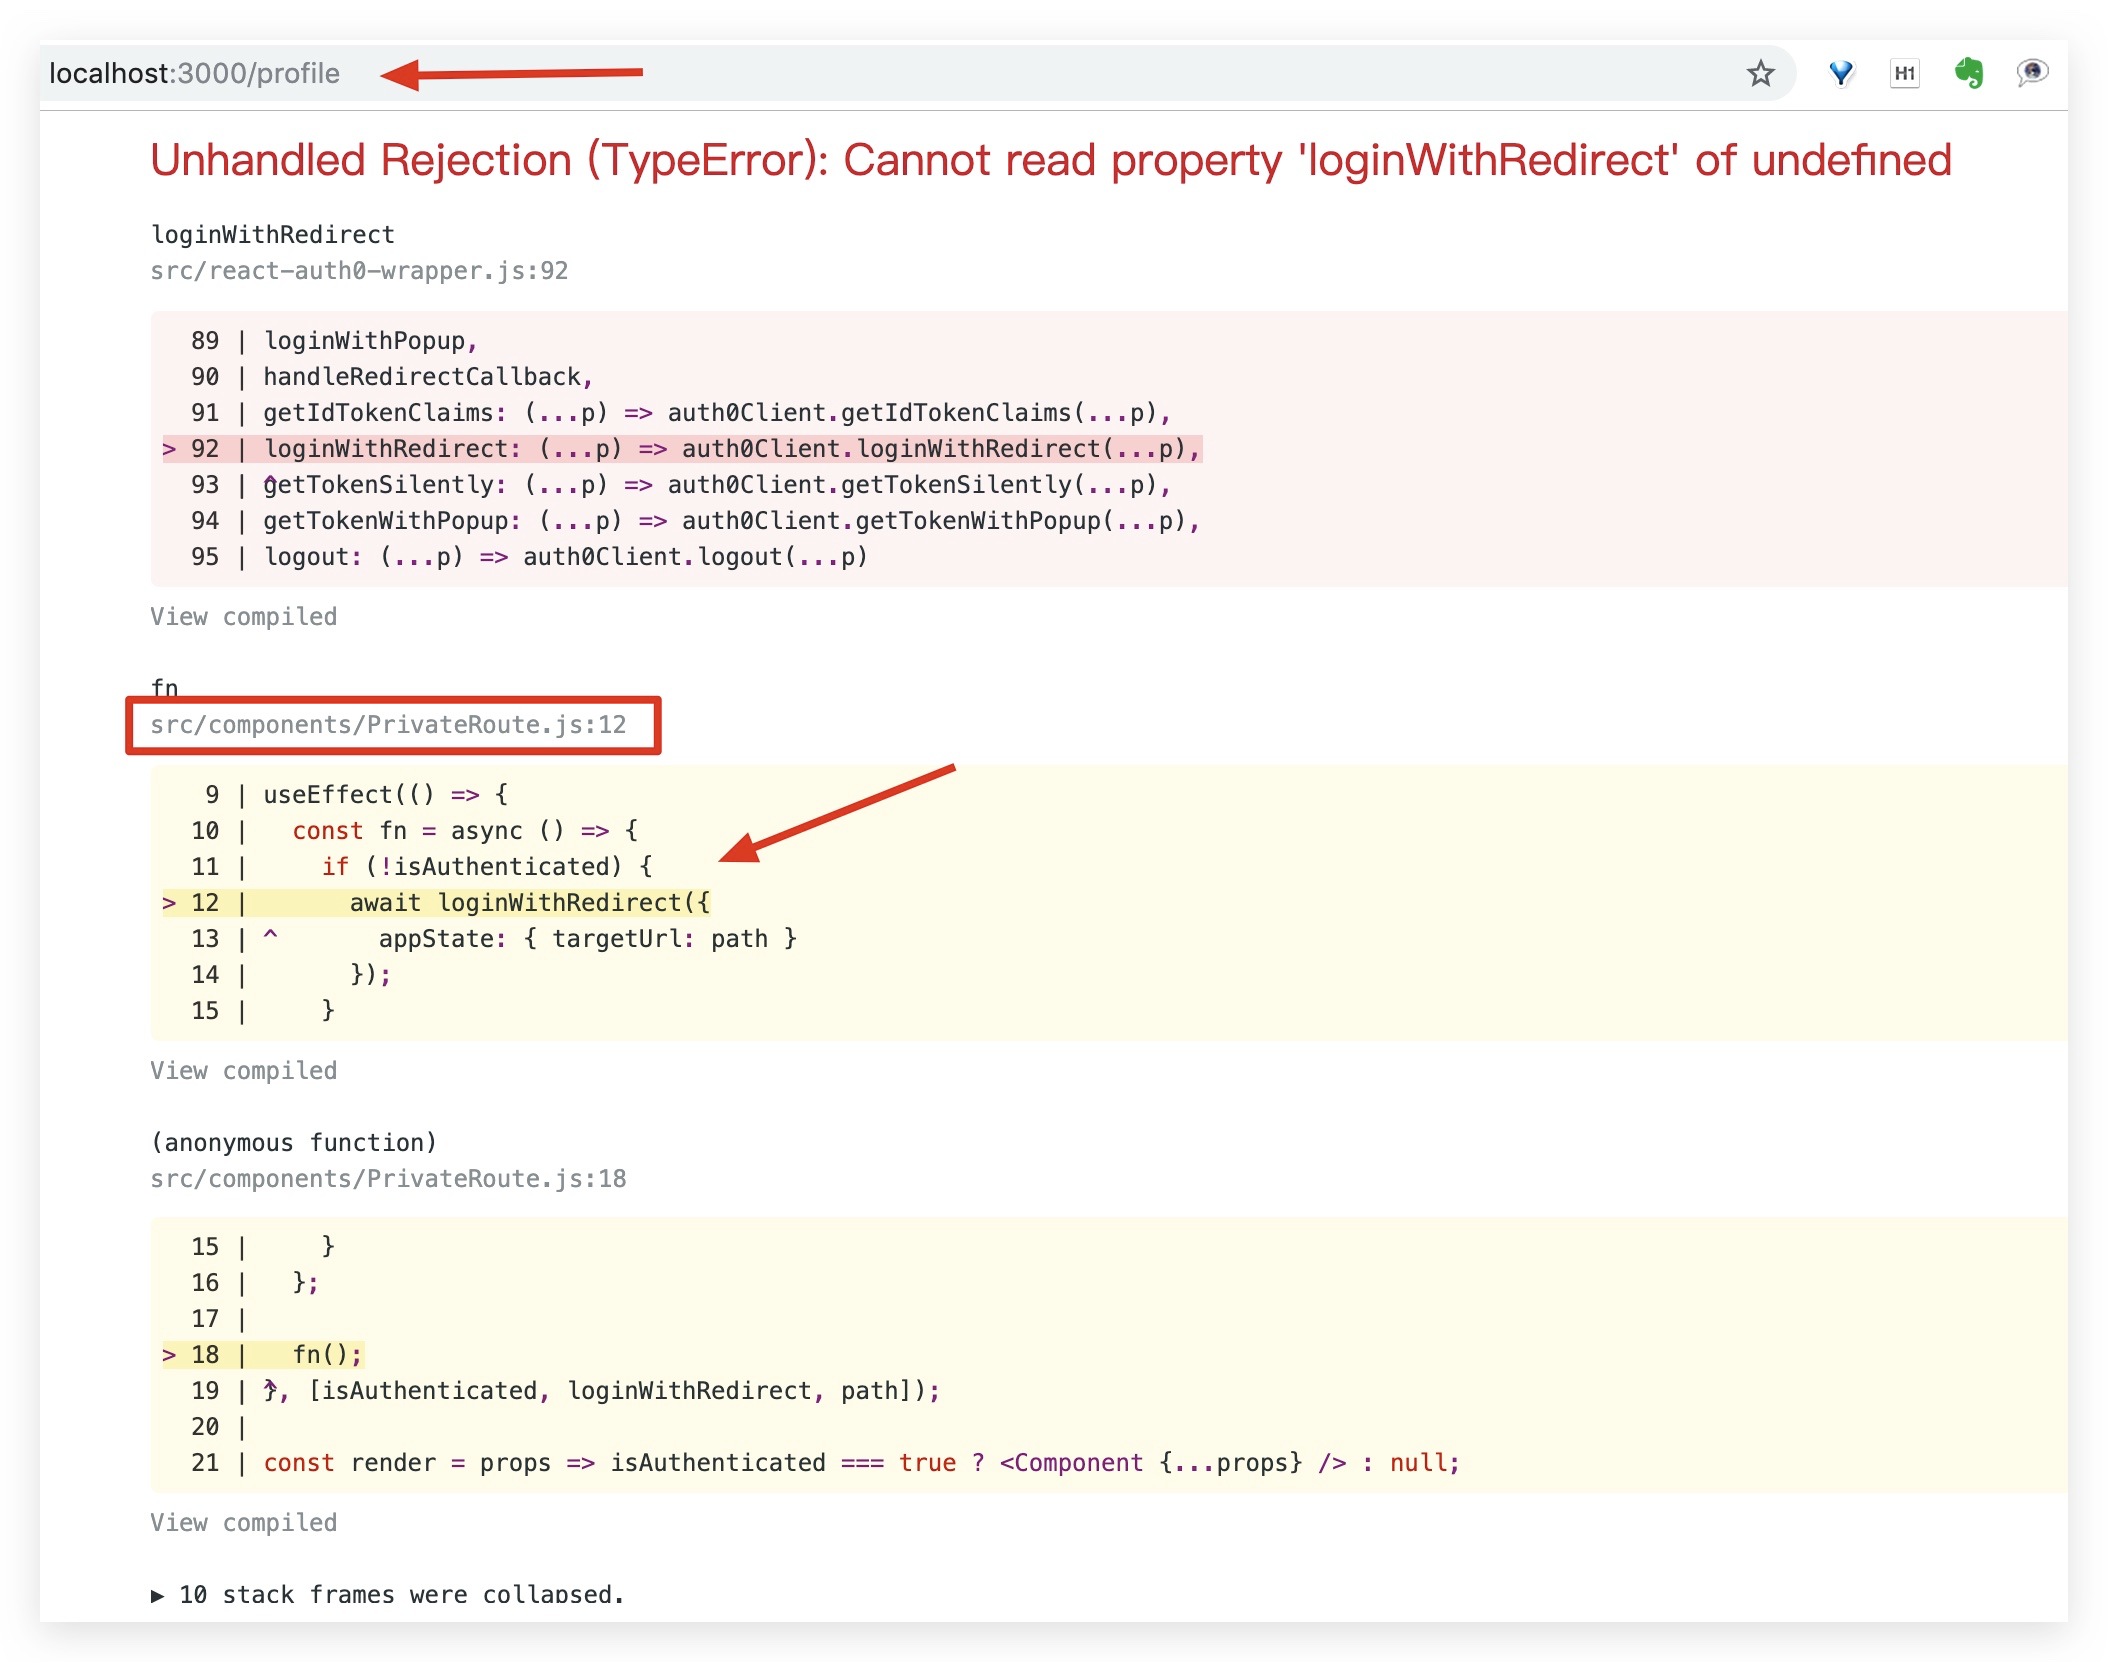 TypeError: Cannot read property 'loginWithRedirect' of